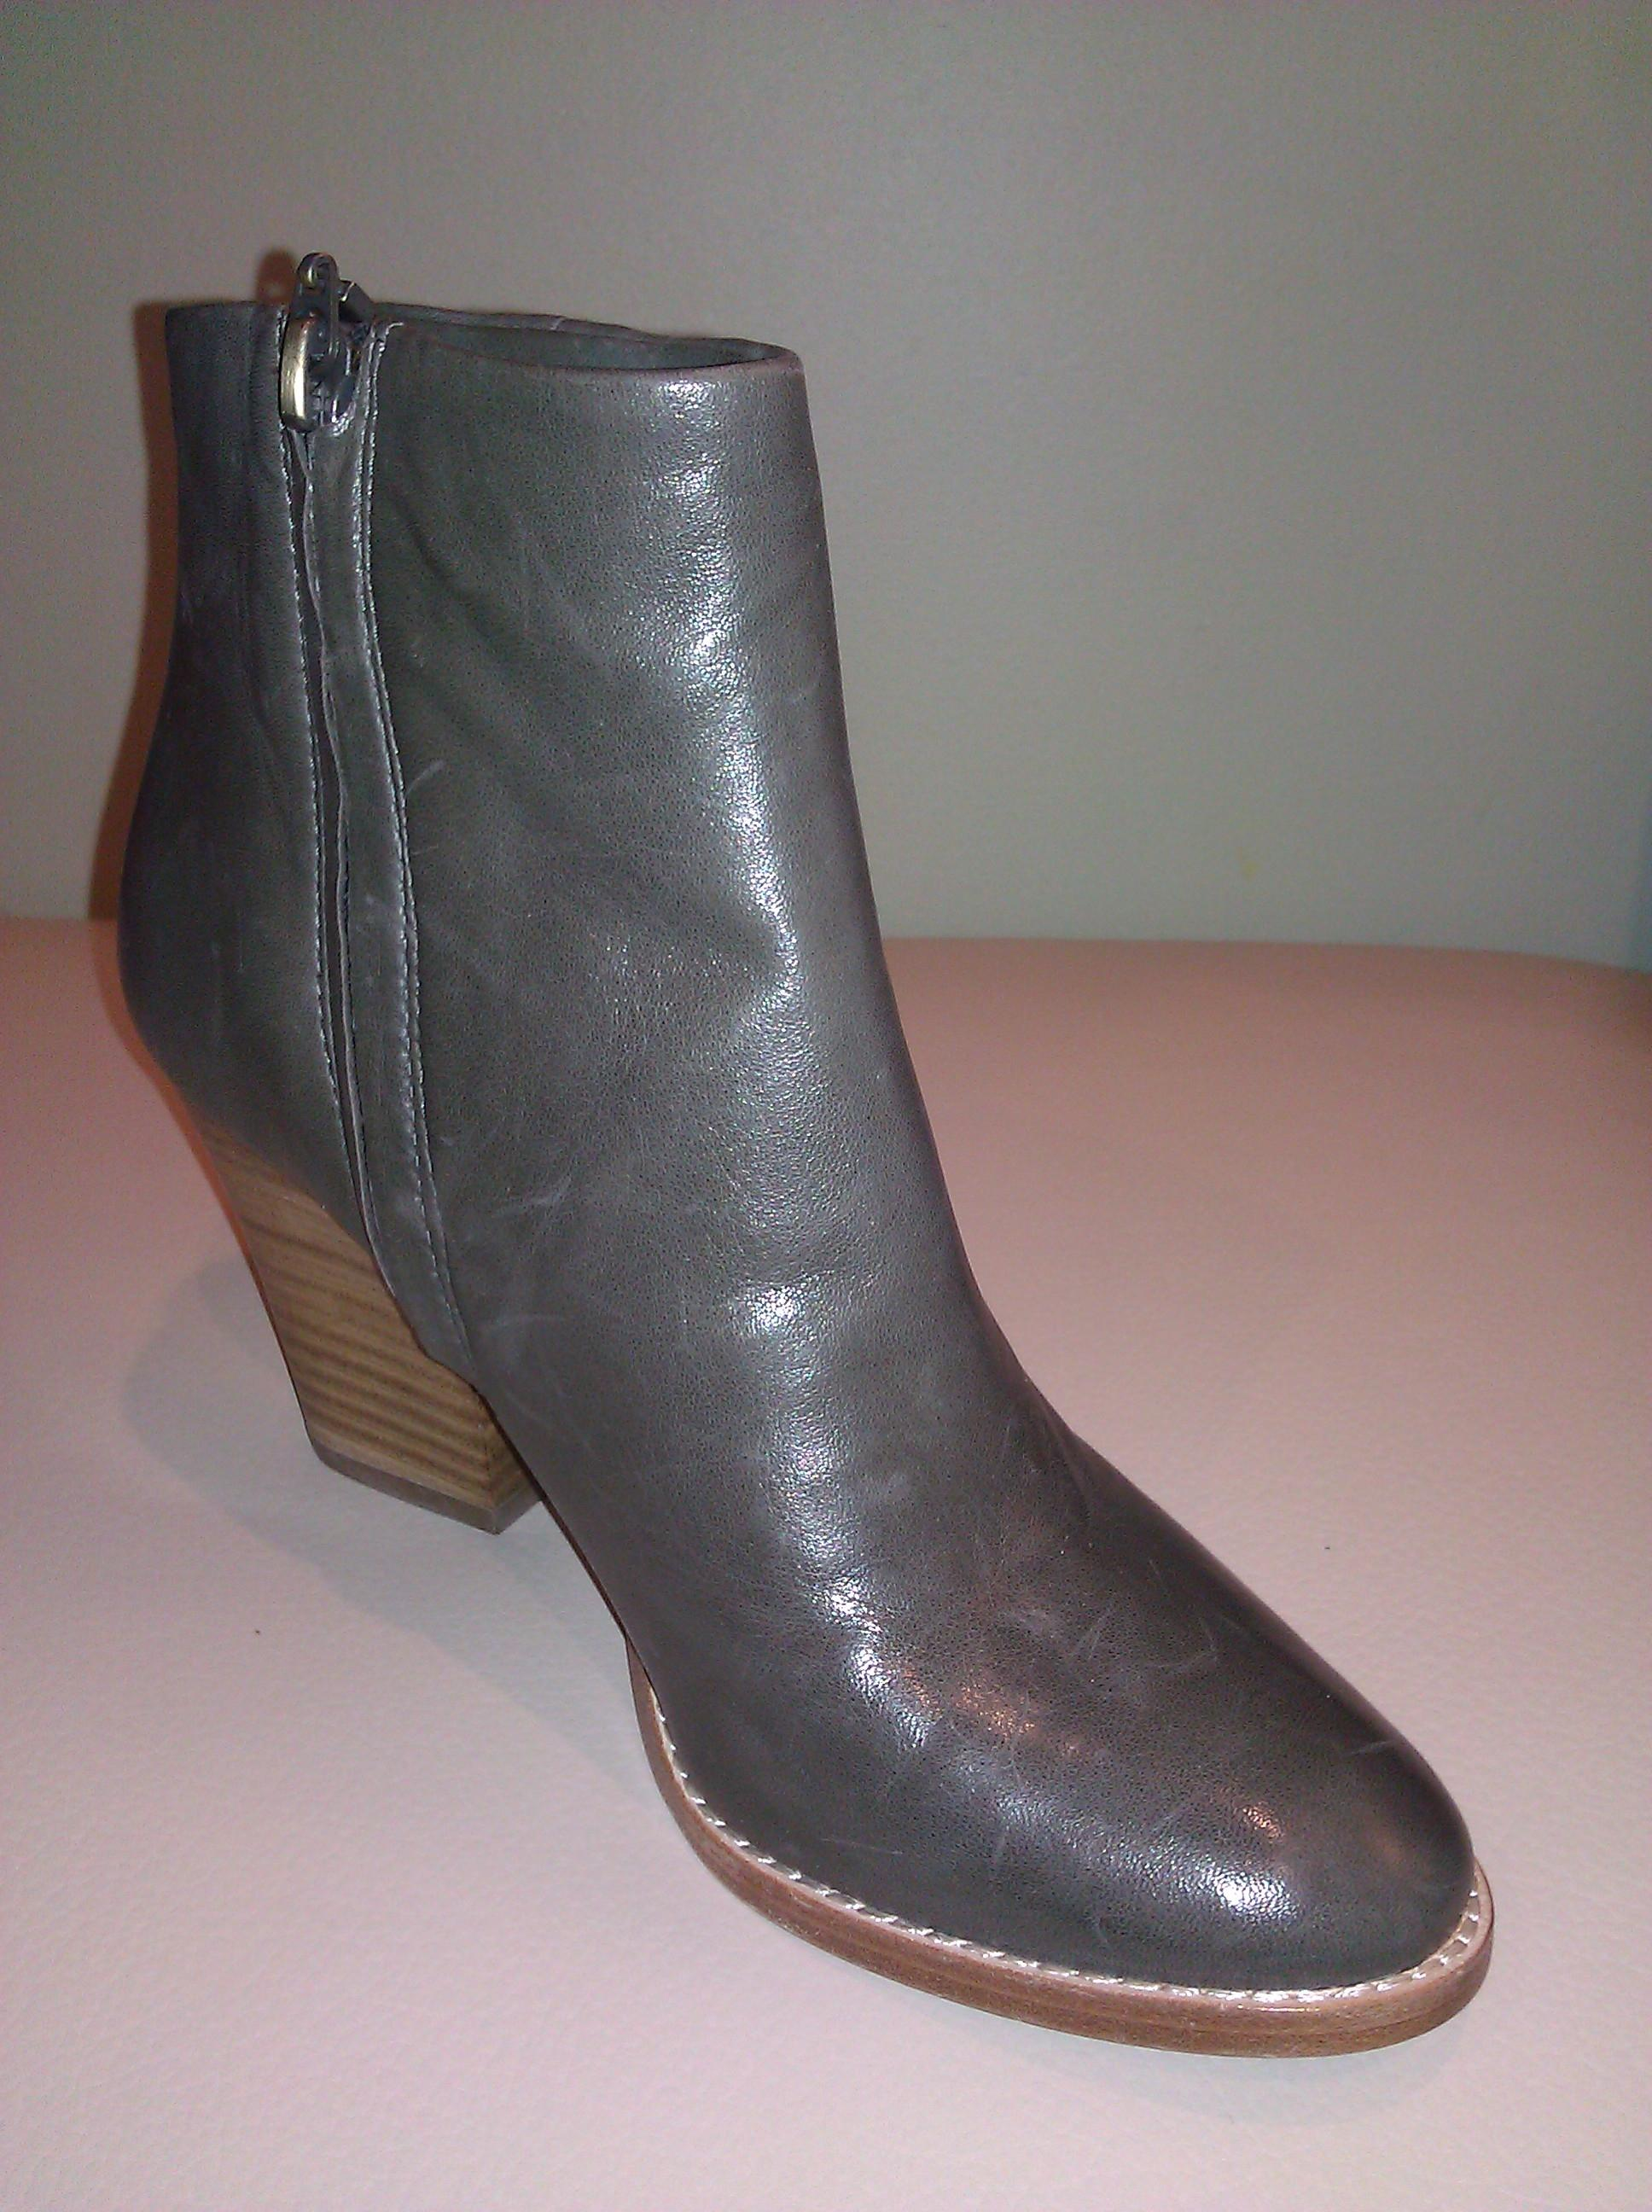 AERIN Leather Ankle Boots high quality cheap price jmwKkh5Gs